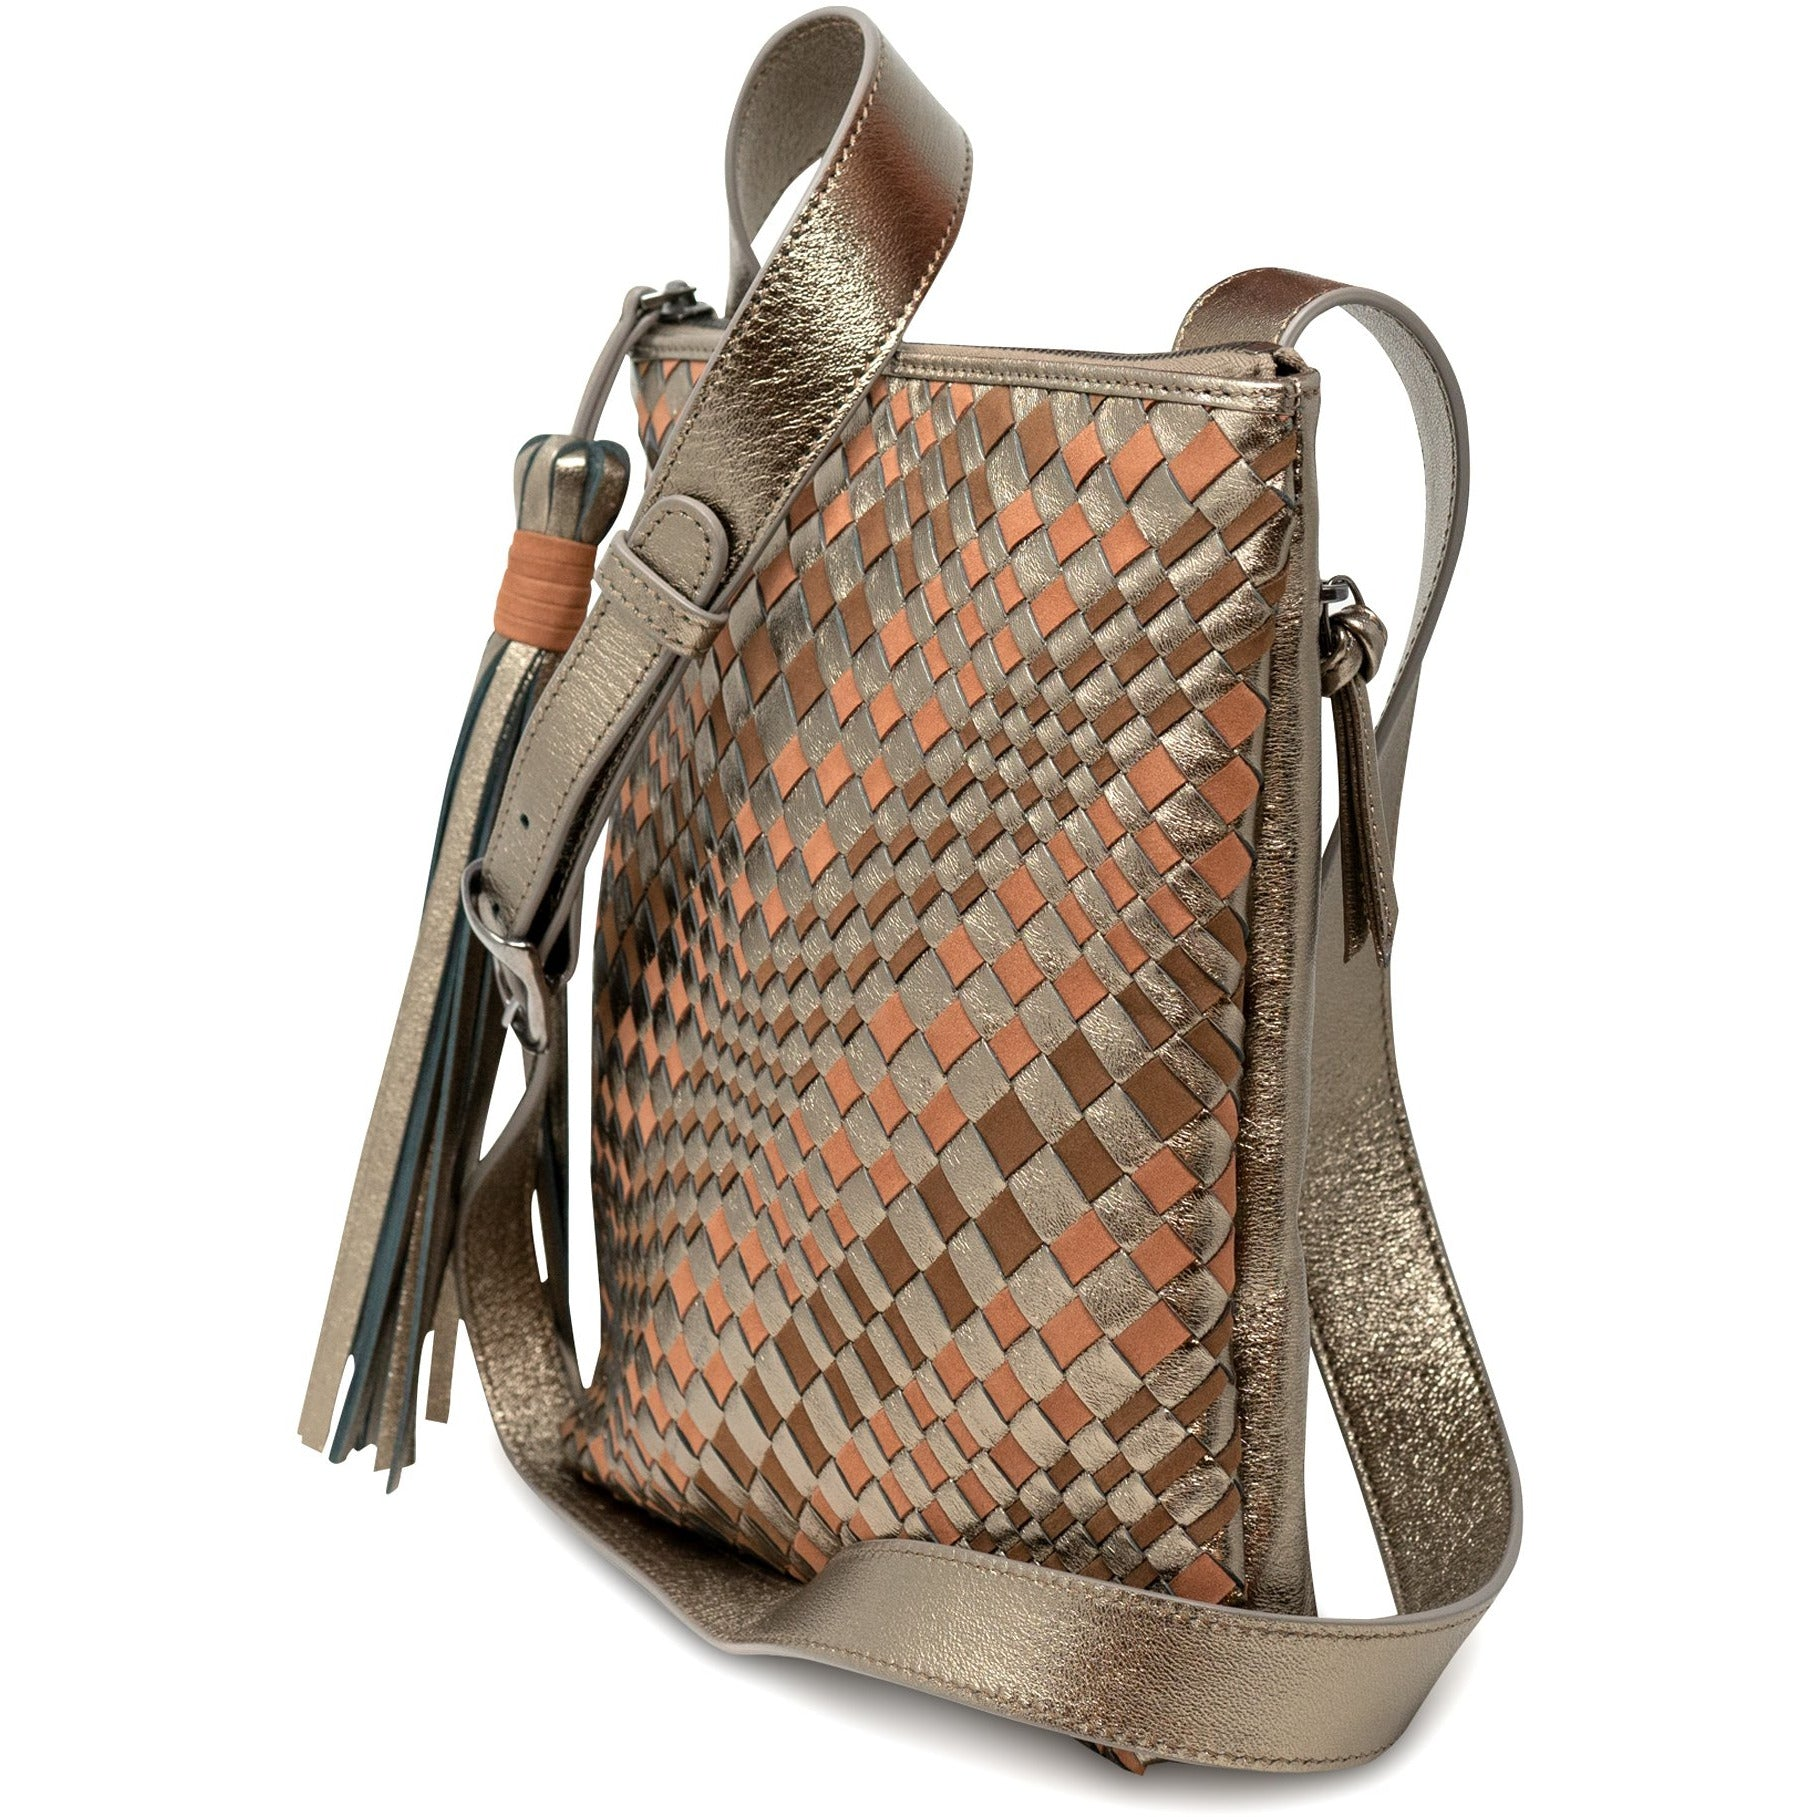 KIM Crossbody Bag - New Spring Summer 2020 Collection